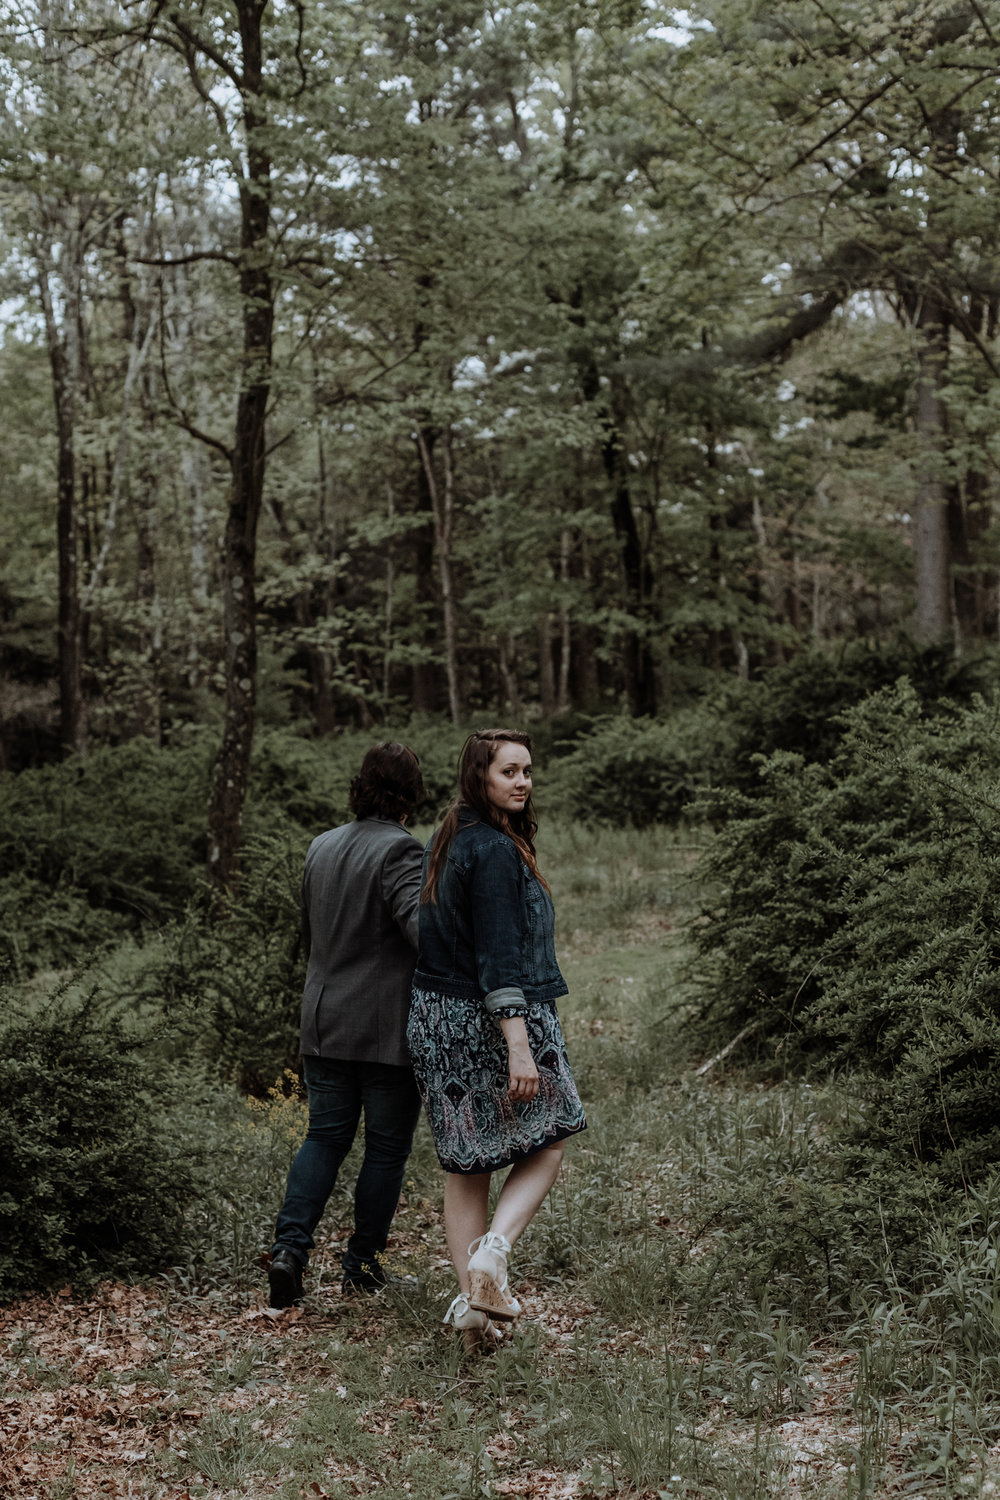 saylorsburg-walking-in-woods-couple-portrait